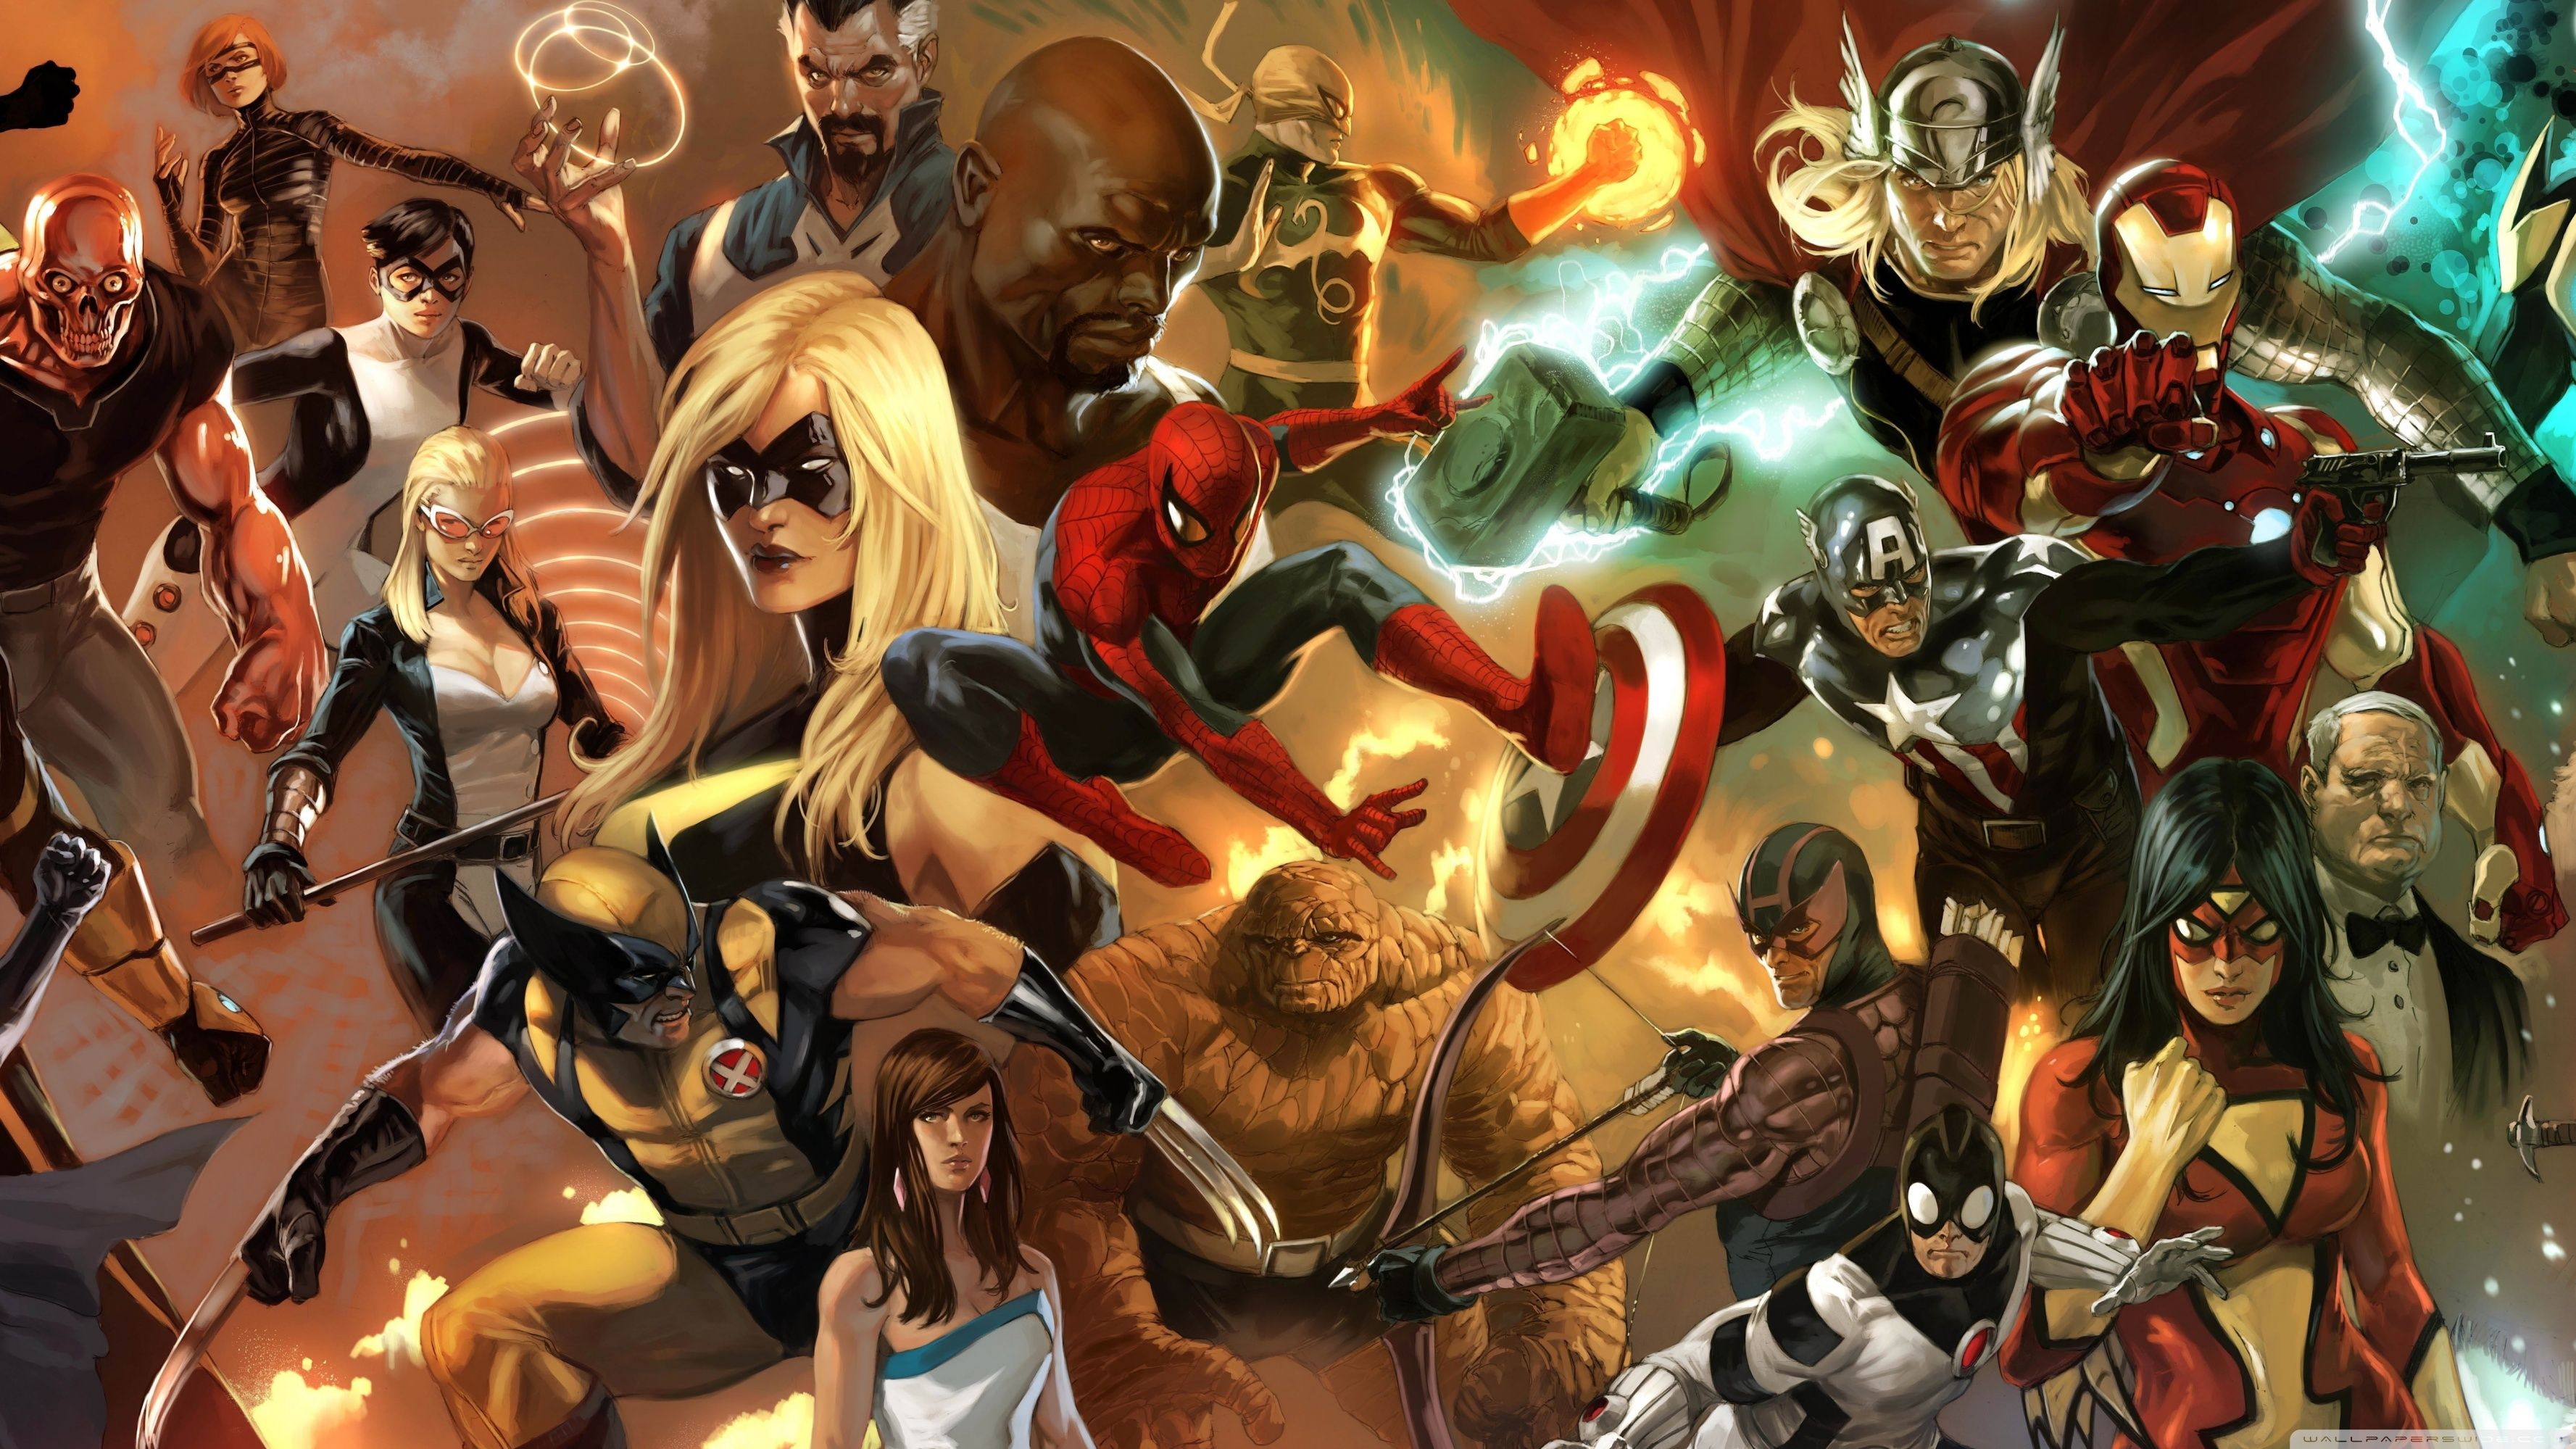 Marvel 3840 X 2160 Wallpapers Top Free Marvel 3840 X 2160 Backgrounds Wallpaperaccess